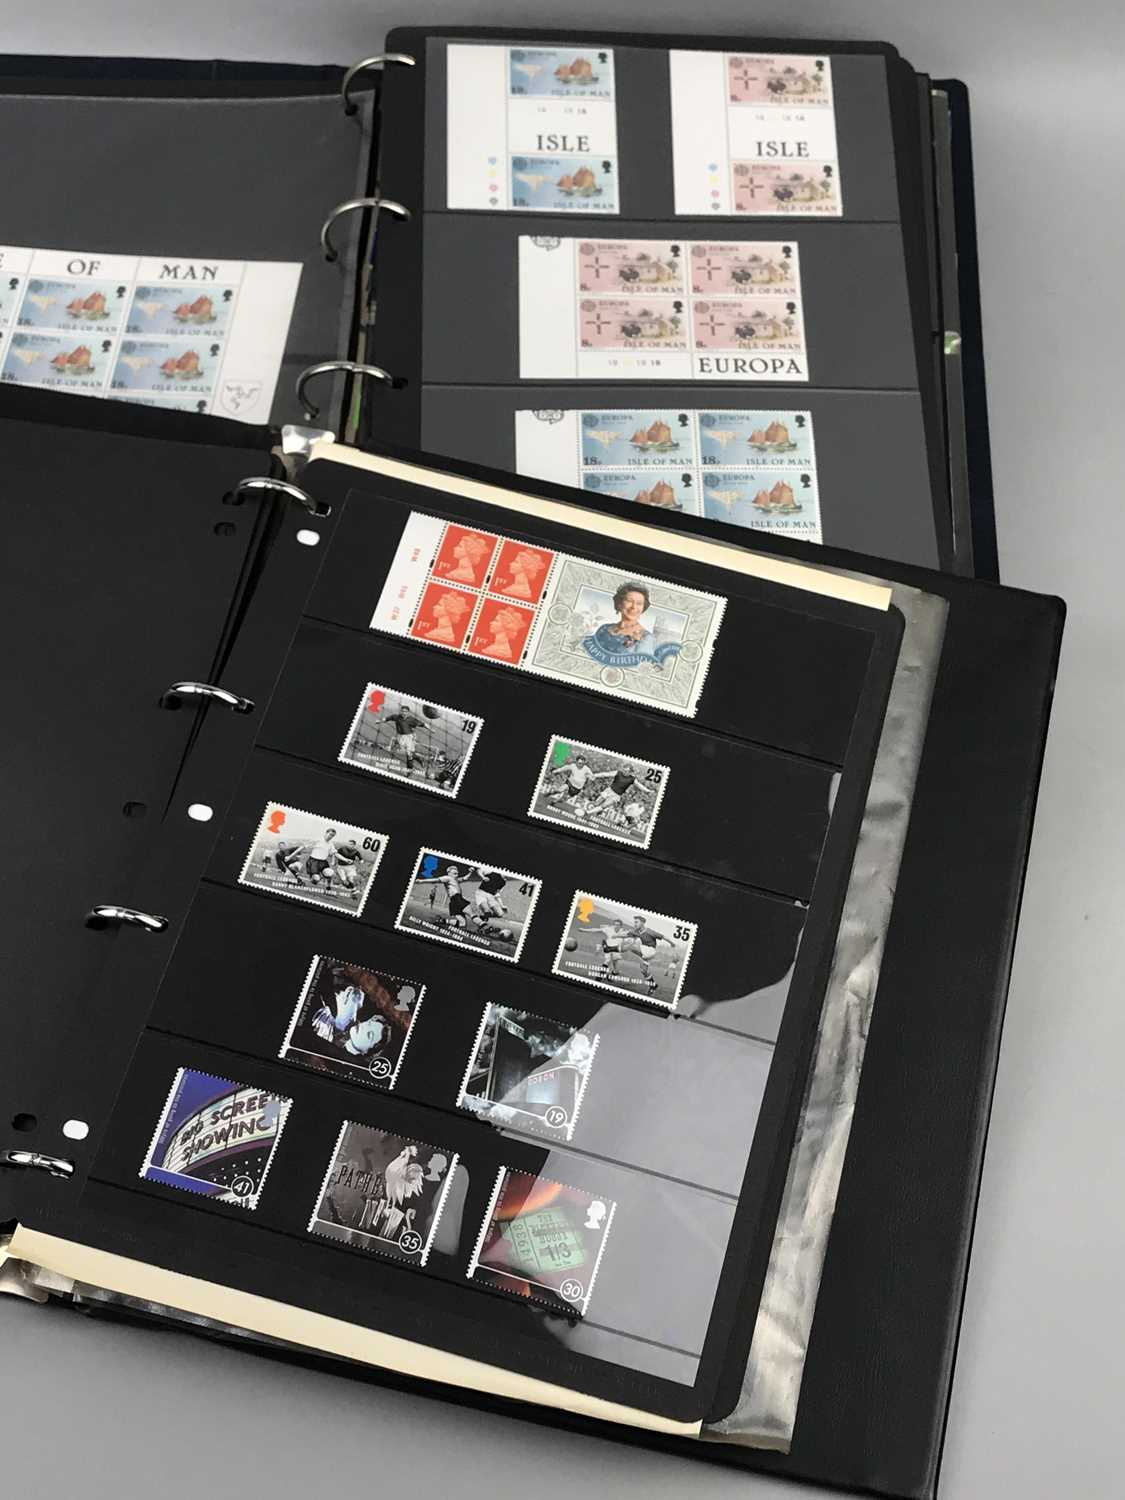 Lot 81 - A LOT OF ISLE OF MAN STAMPS, OTHER STAMP BOOKS AND STAMPS